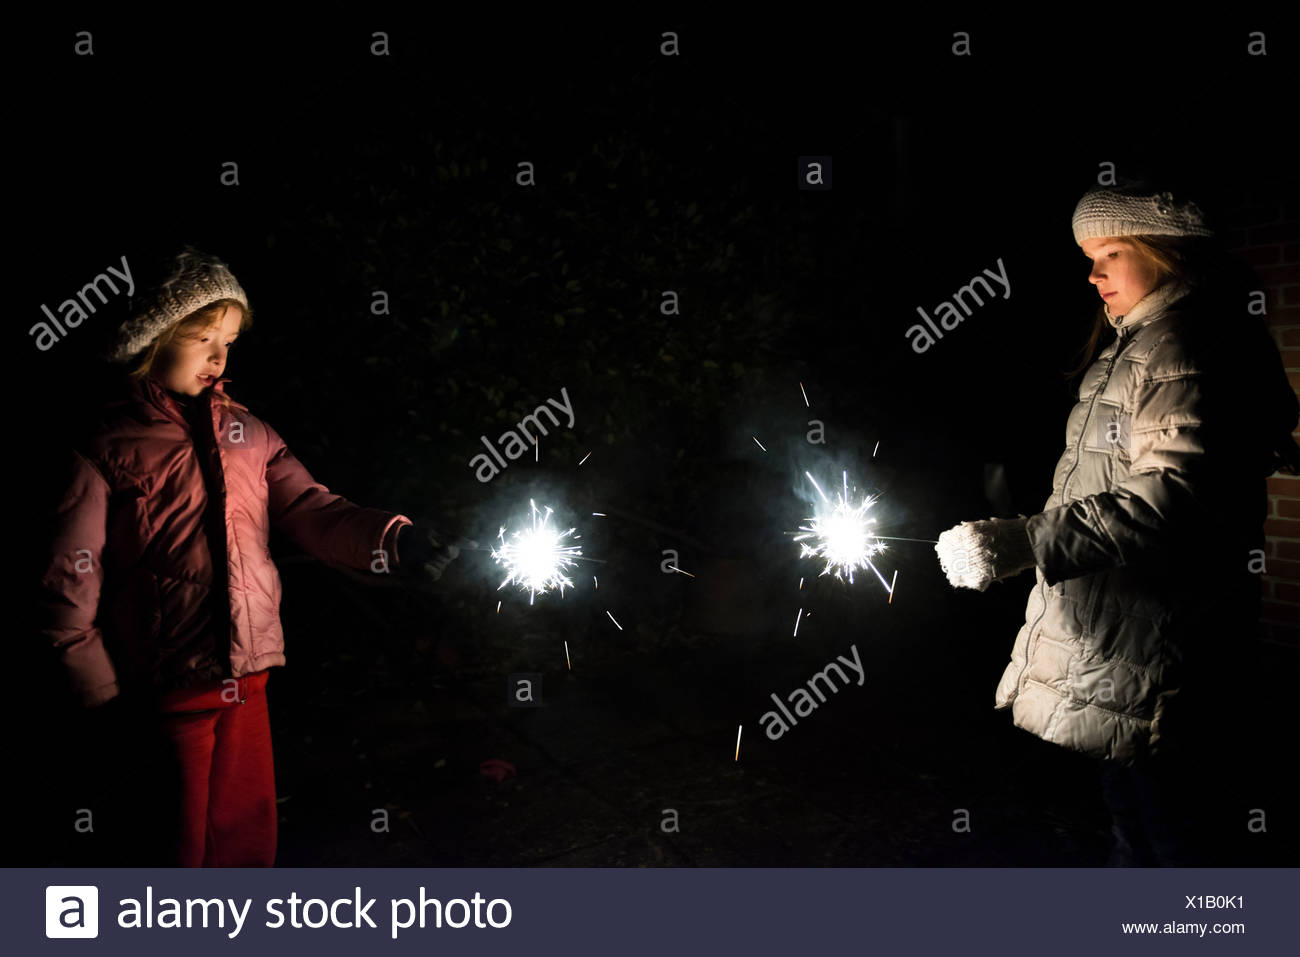 Sisters holding sparklers at night - Stock Image